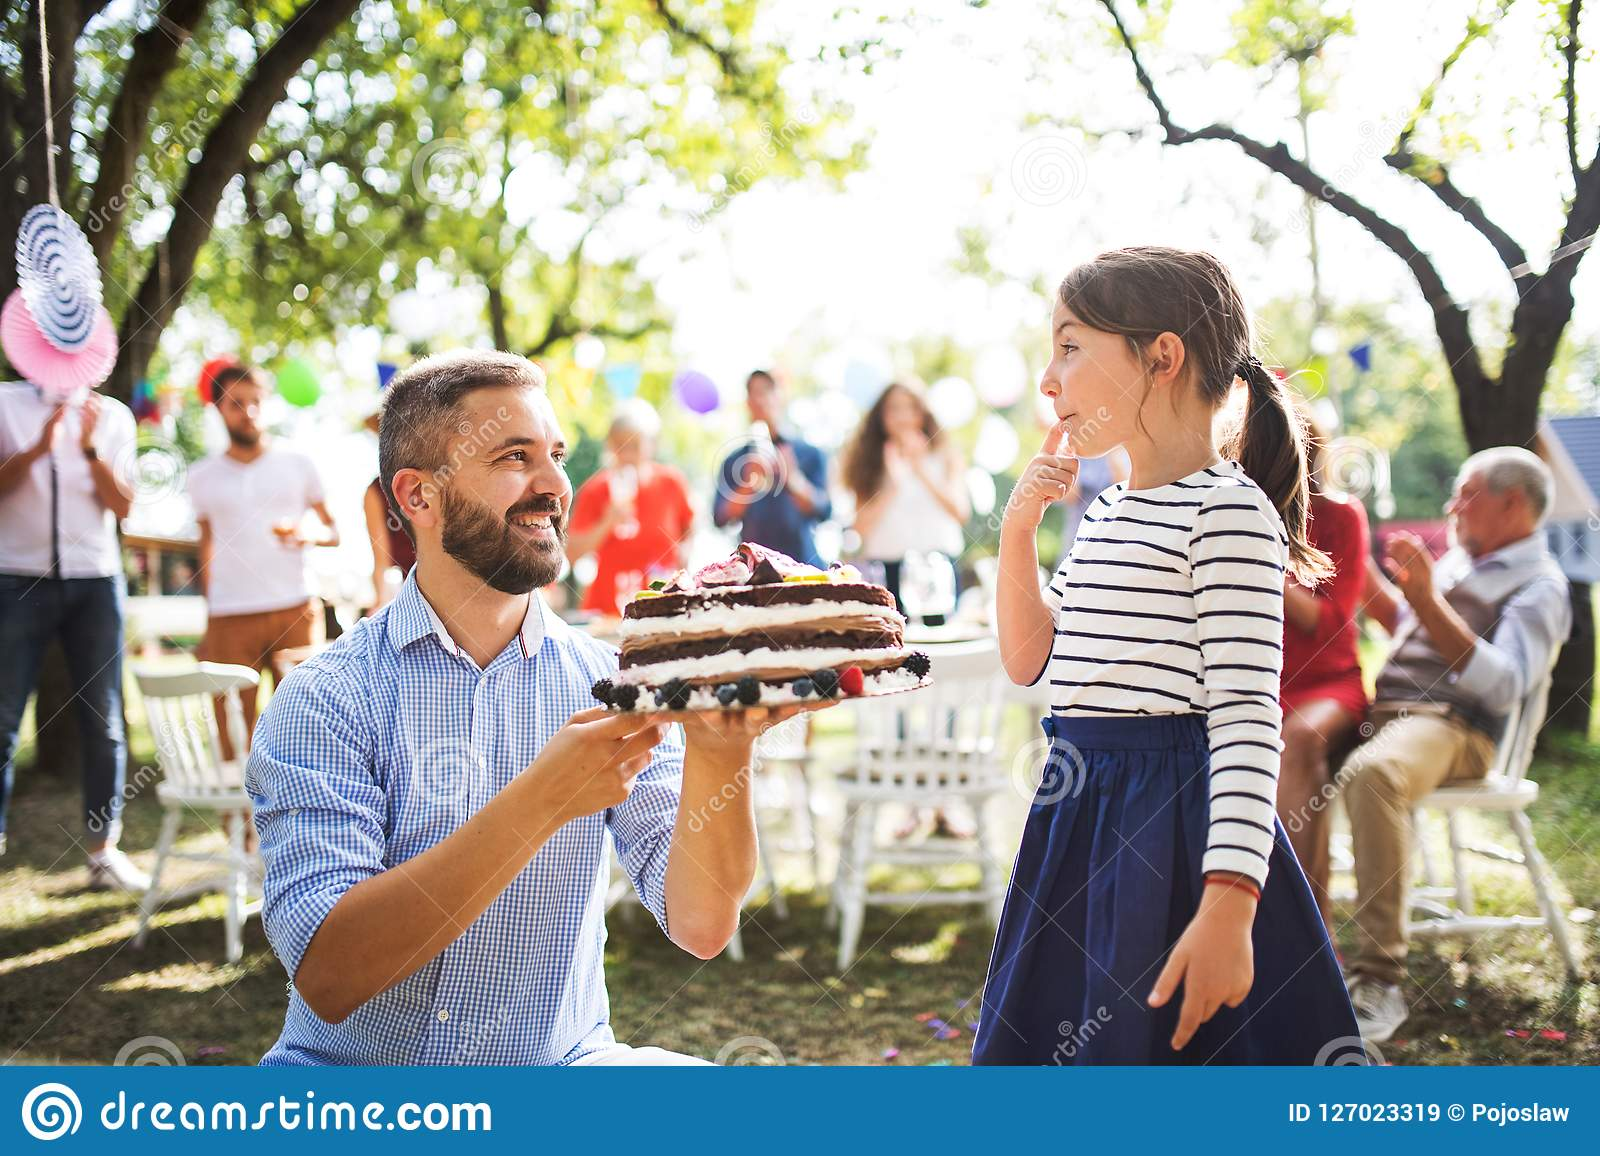 Father giving a cake to a small daughter on a family celebration or a birthday party.